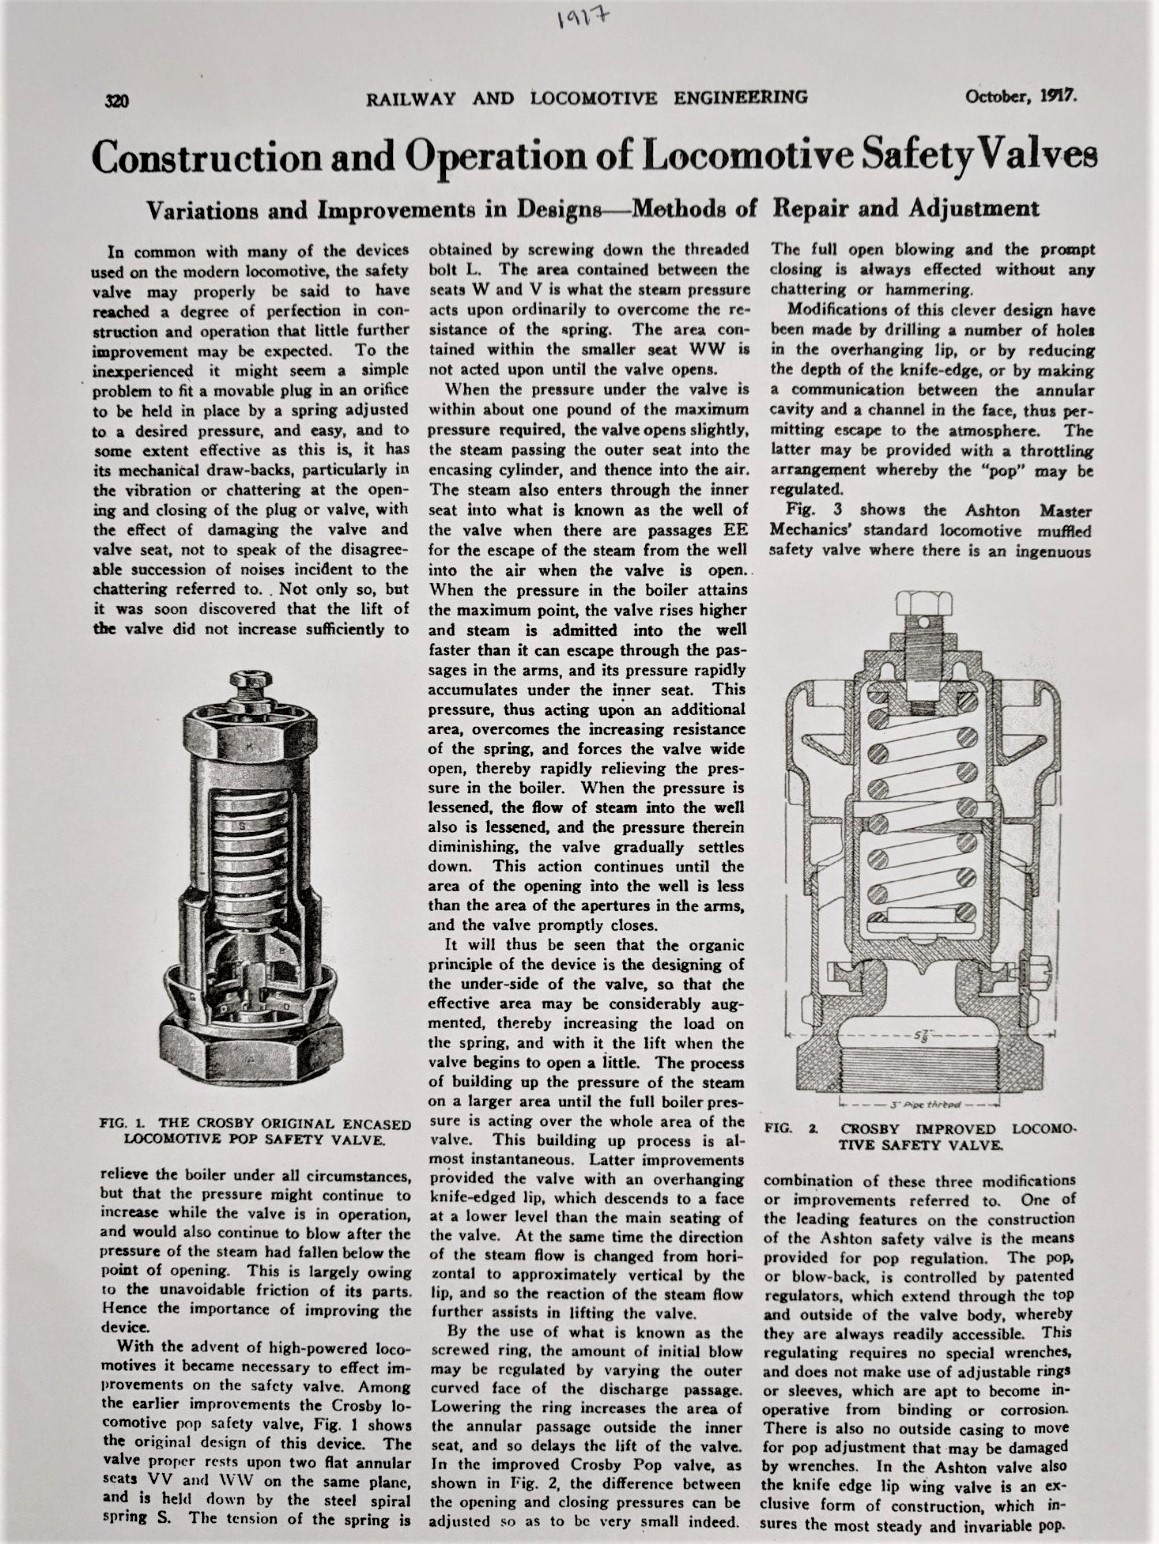 locomotive safety valve #1 1917.jpg